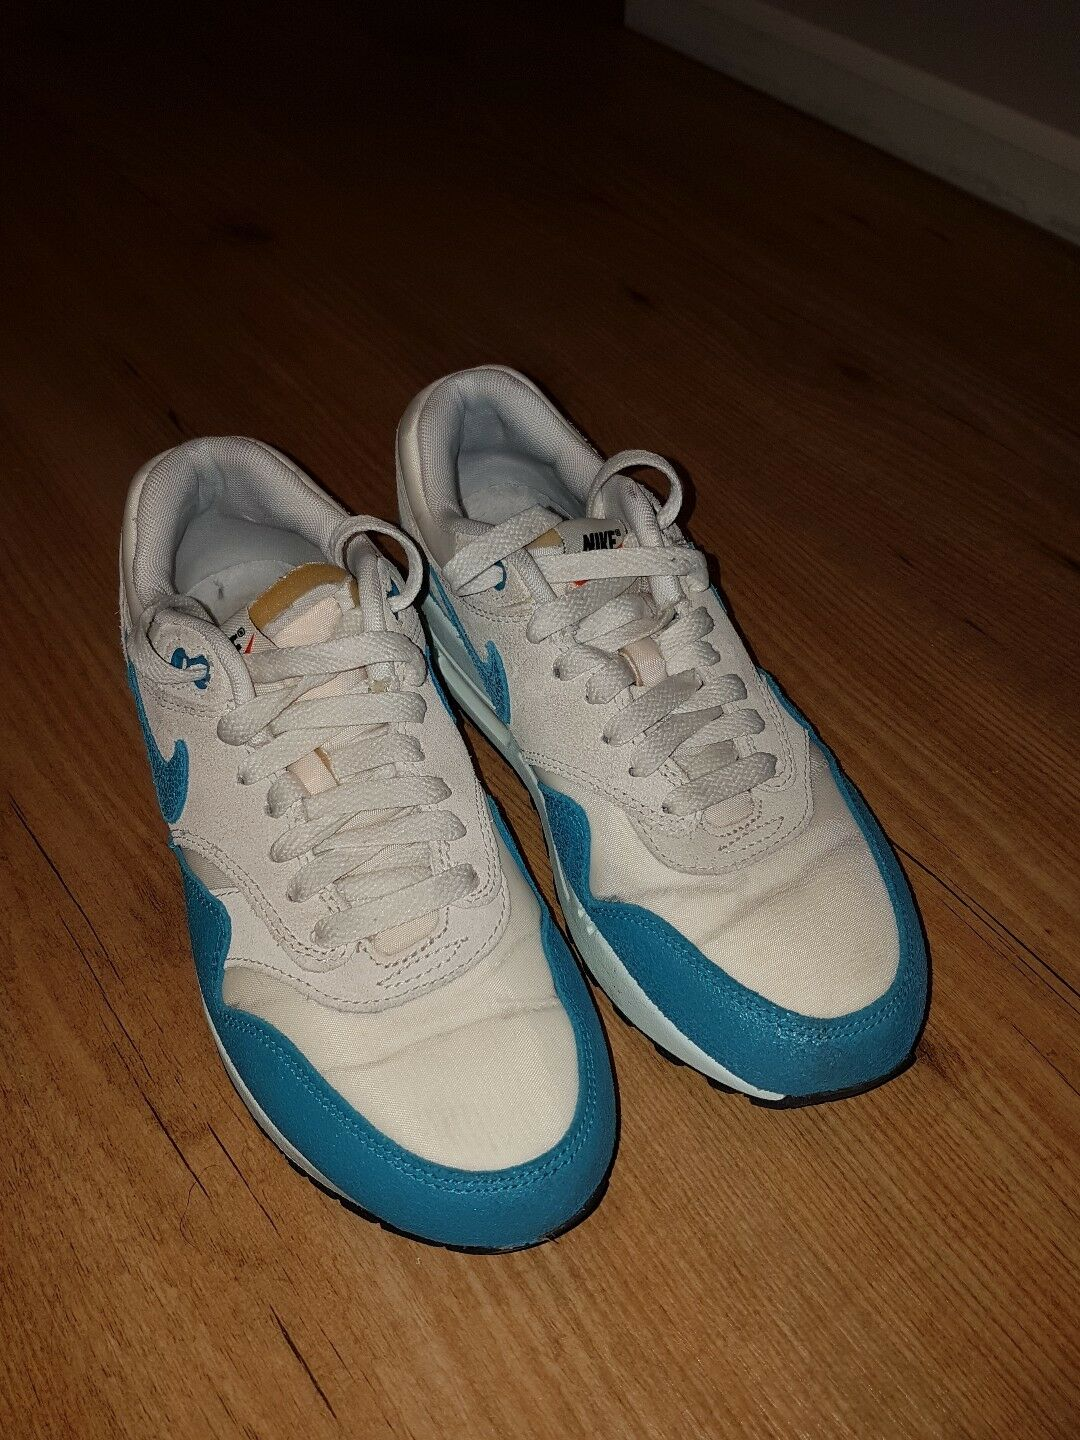 Nike Air Max 1 Vintage Trainer   Sneakers    Size uk 4.5 (555284-102) RARE COLOUR 99a7dc